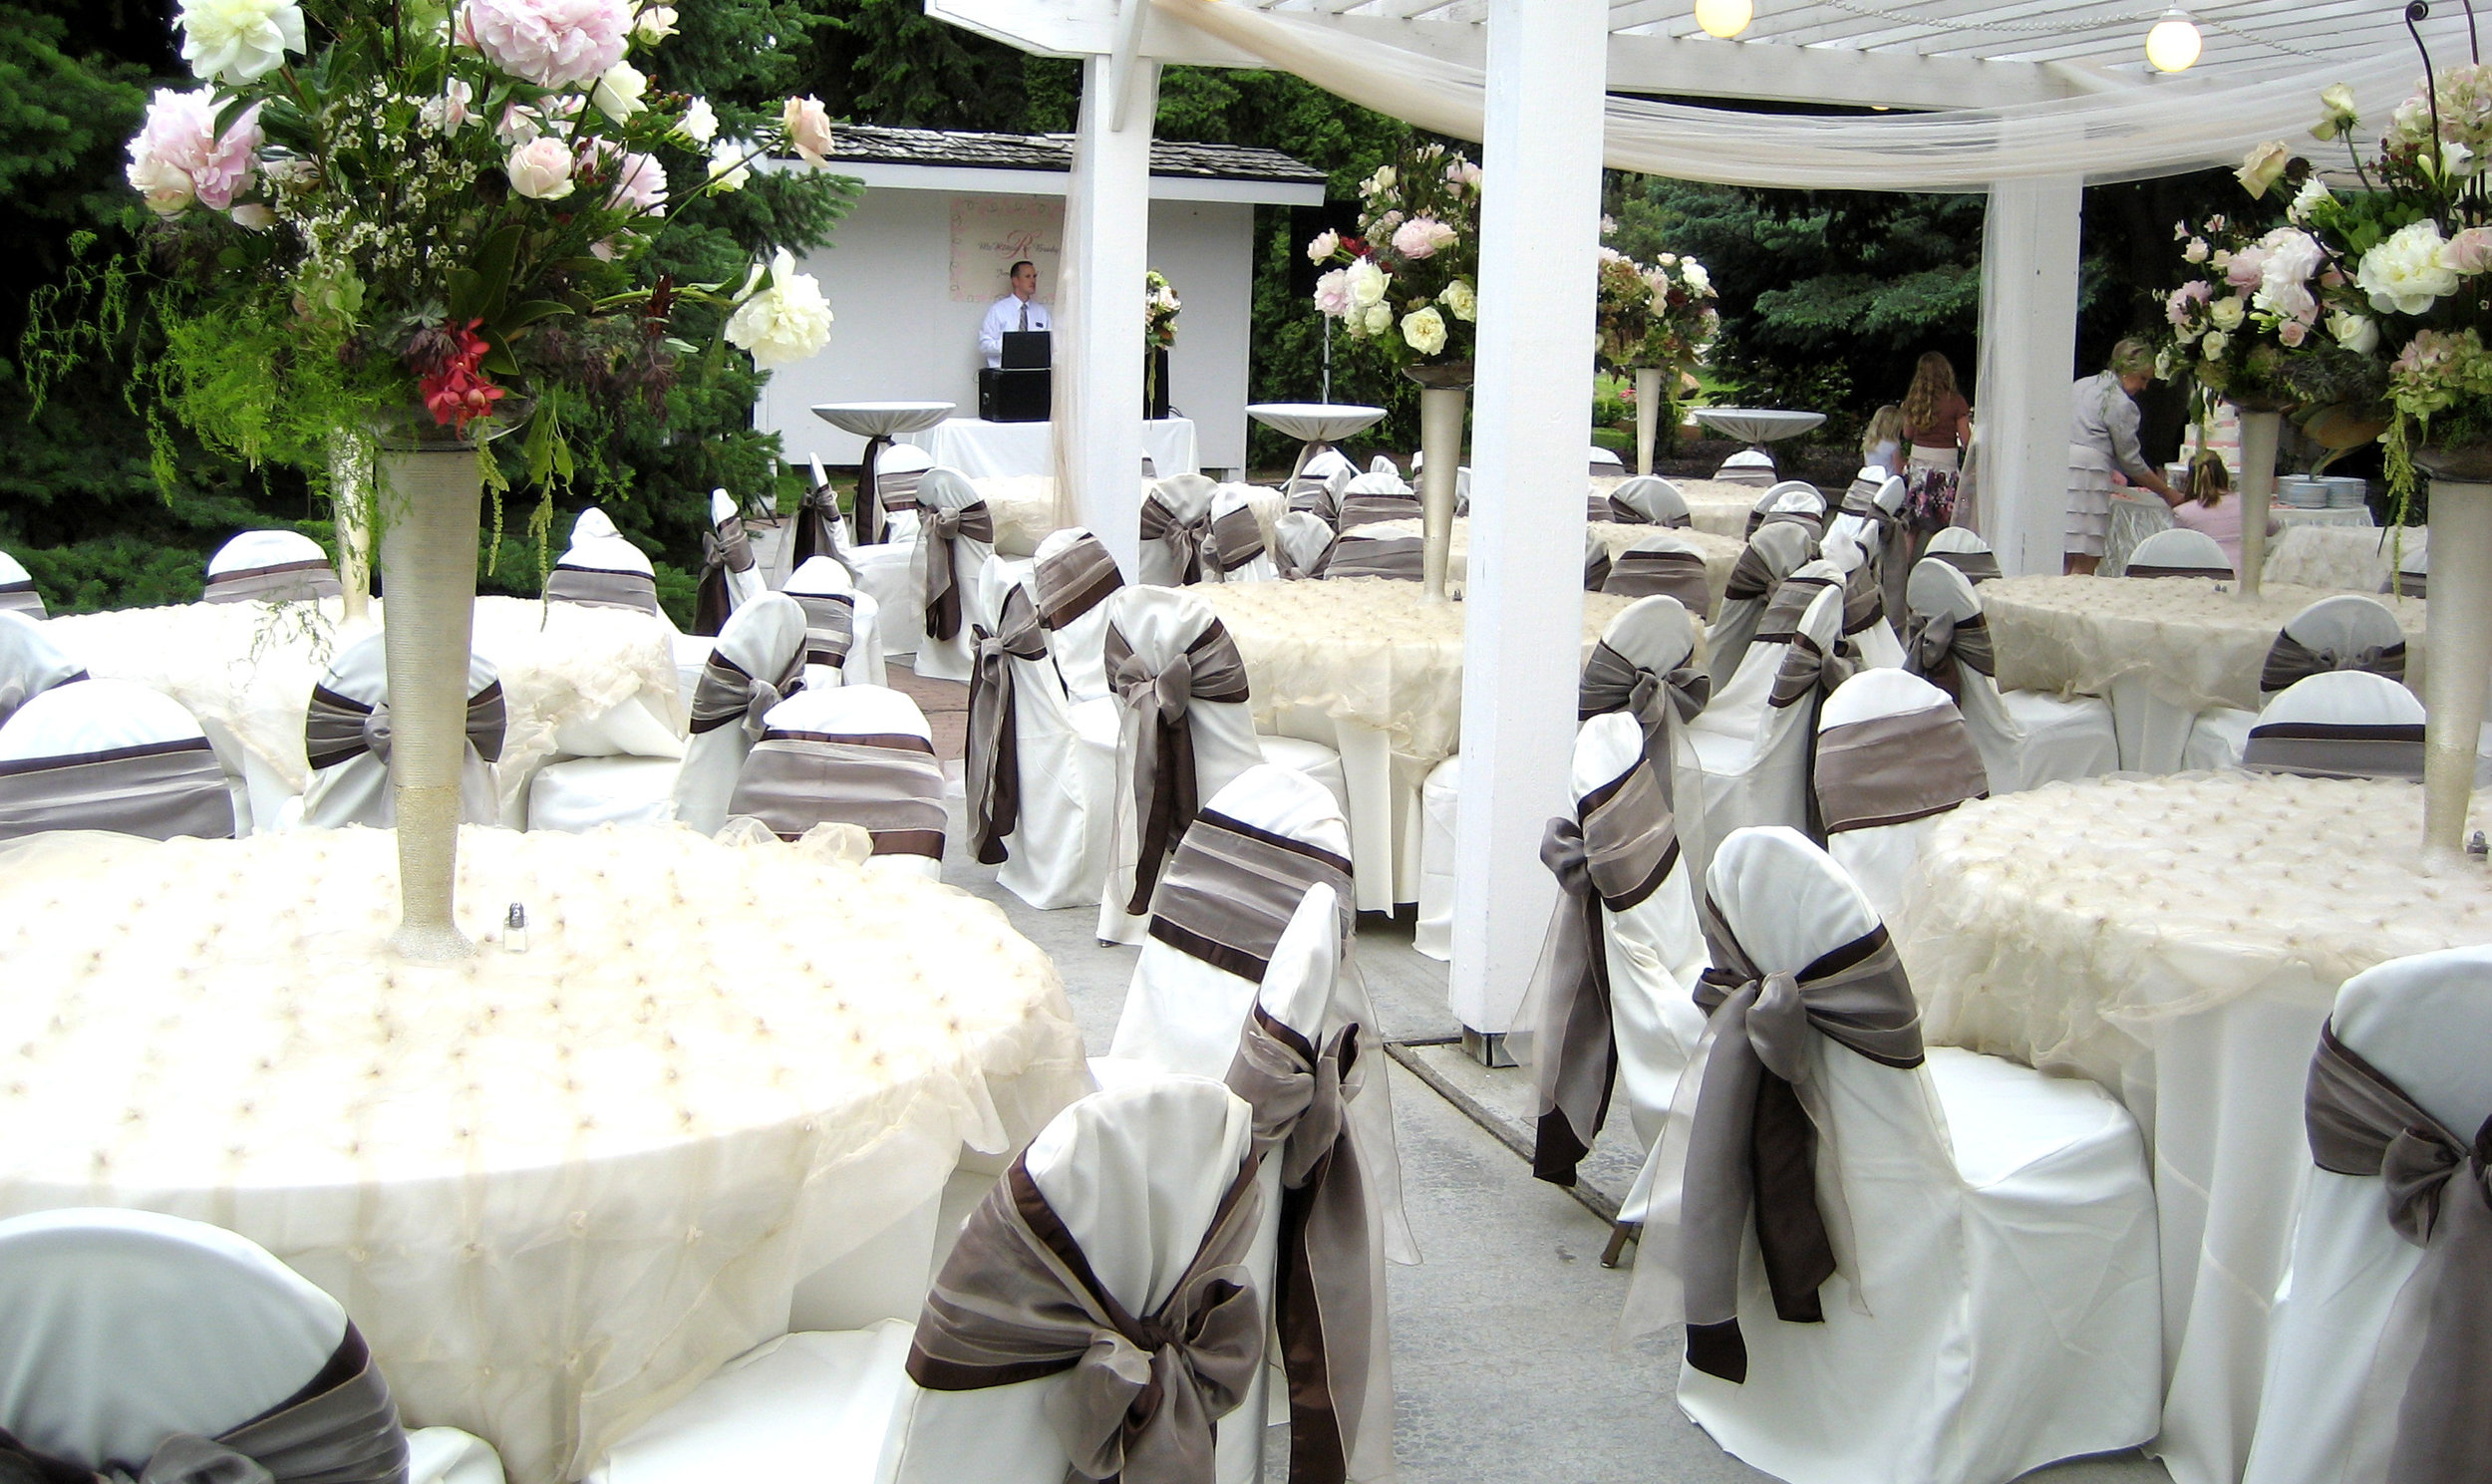 chair cover rentals dearborn mi dining table with green chairs party max event equipment rental in livonia